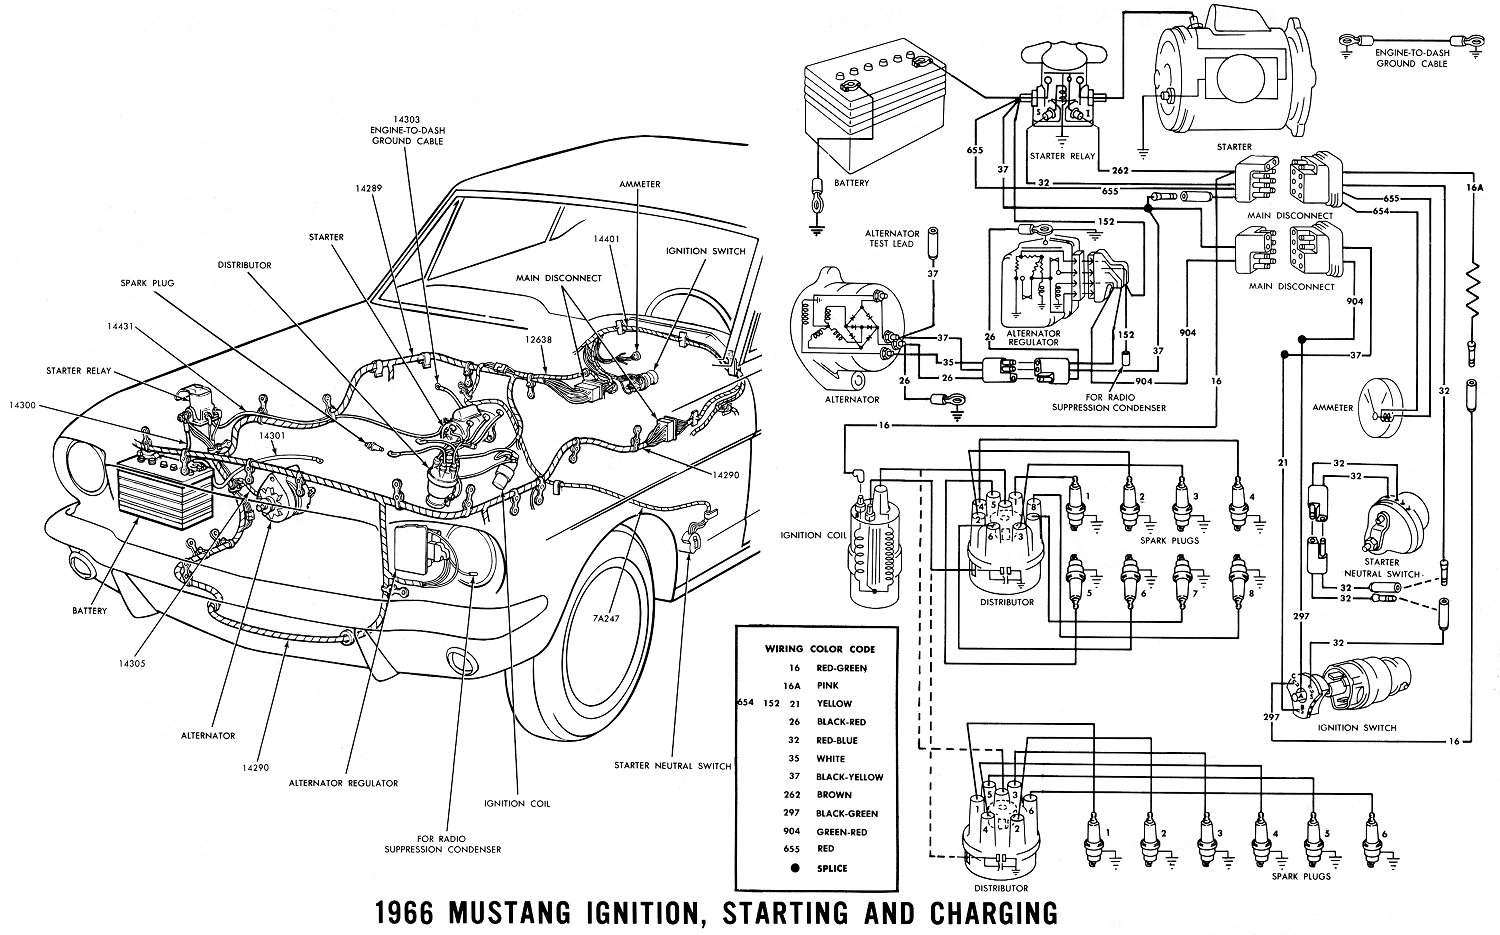 ignit jpg 1966 mustang wiring diagrams average joe restoration 1966 mustang ignition starting and charging